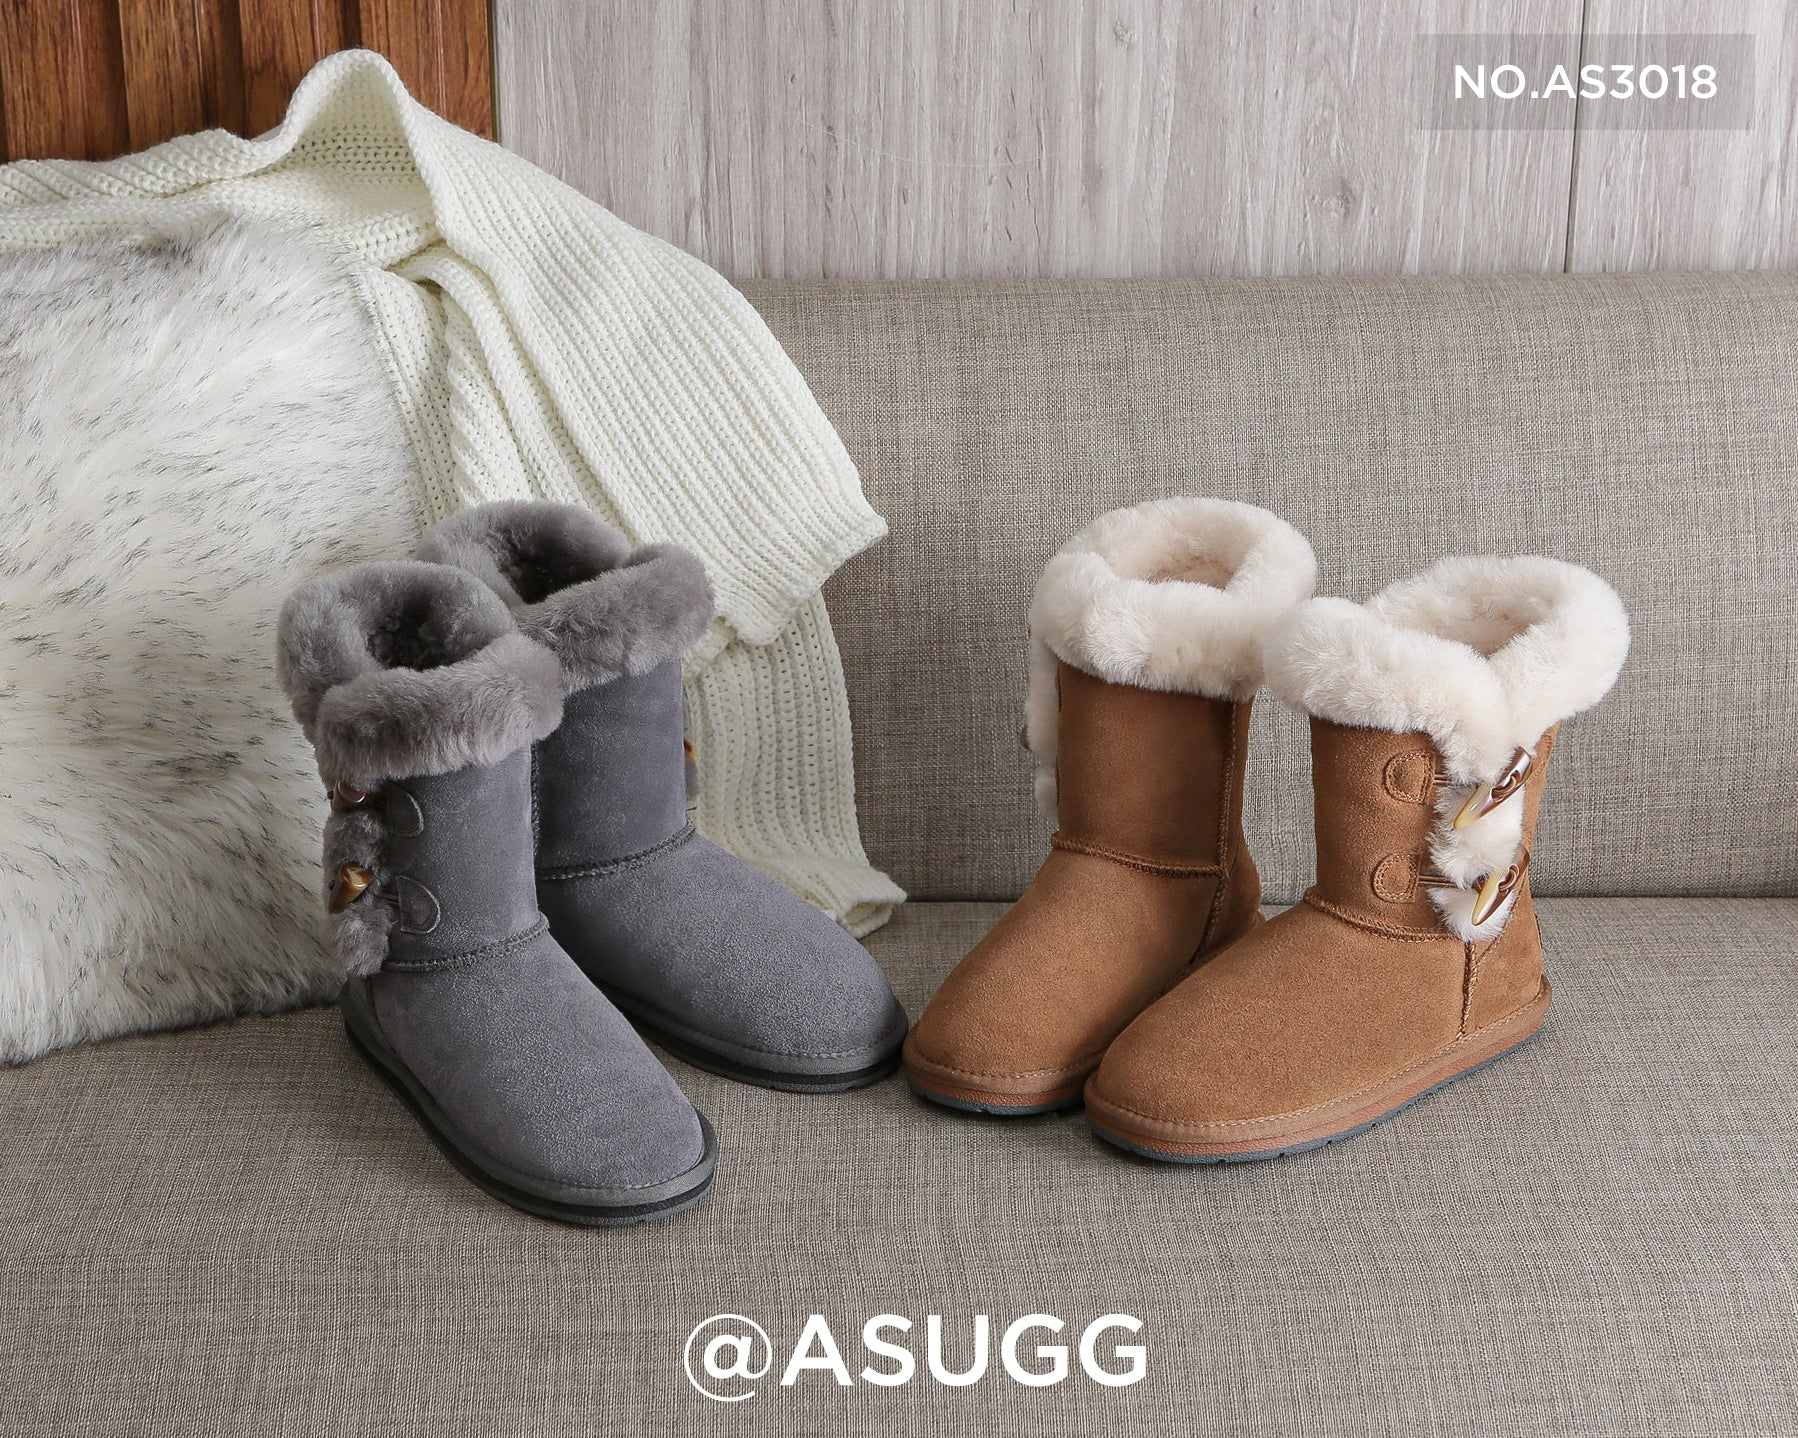 ugg boots with toggles